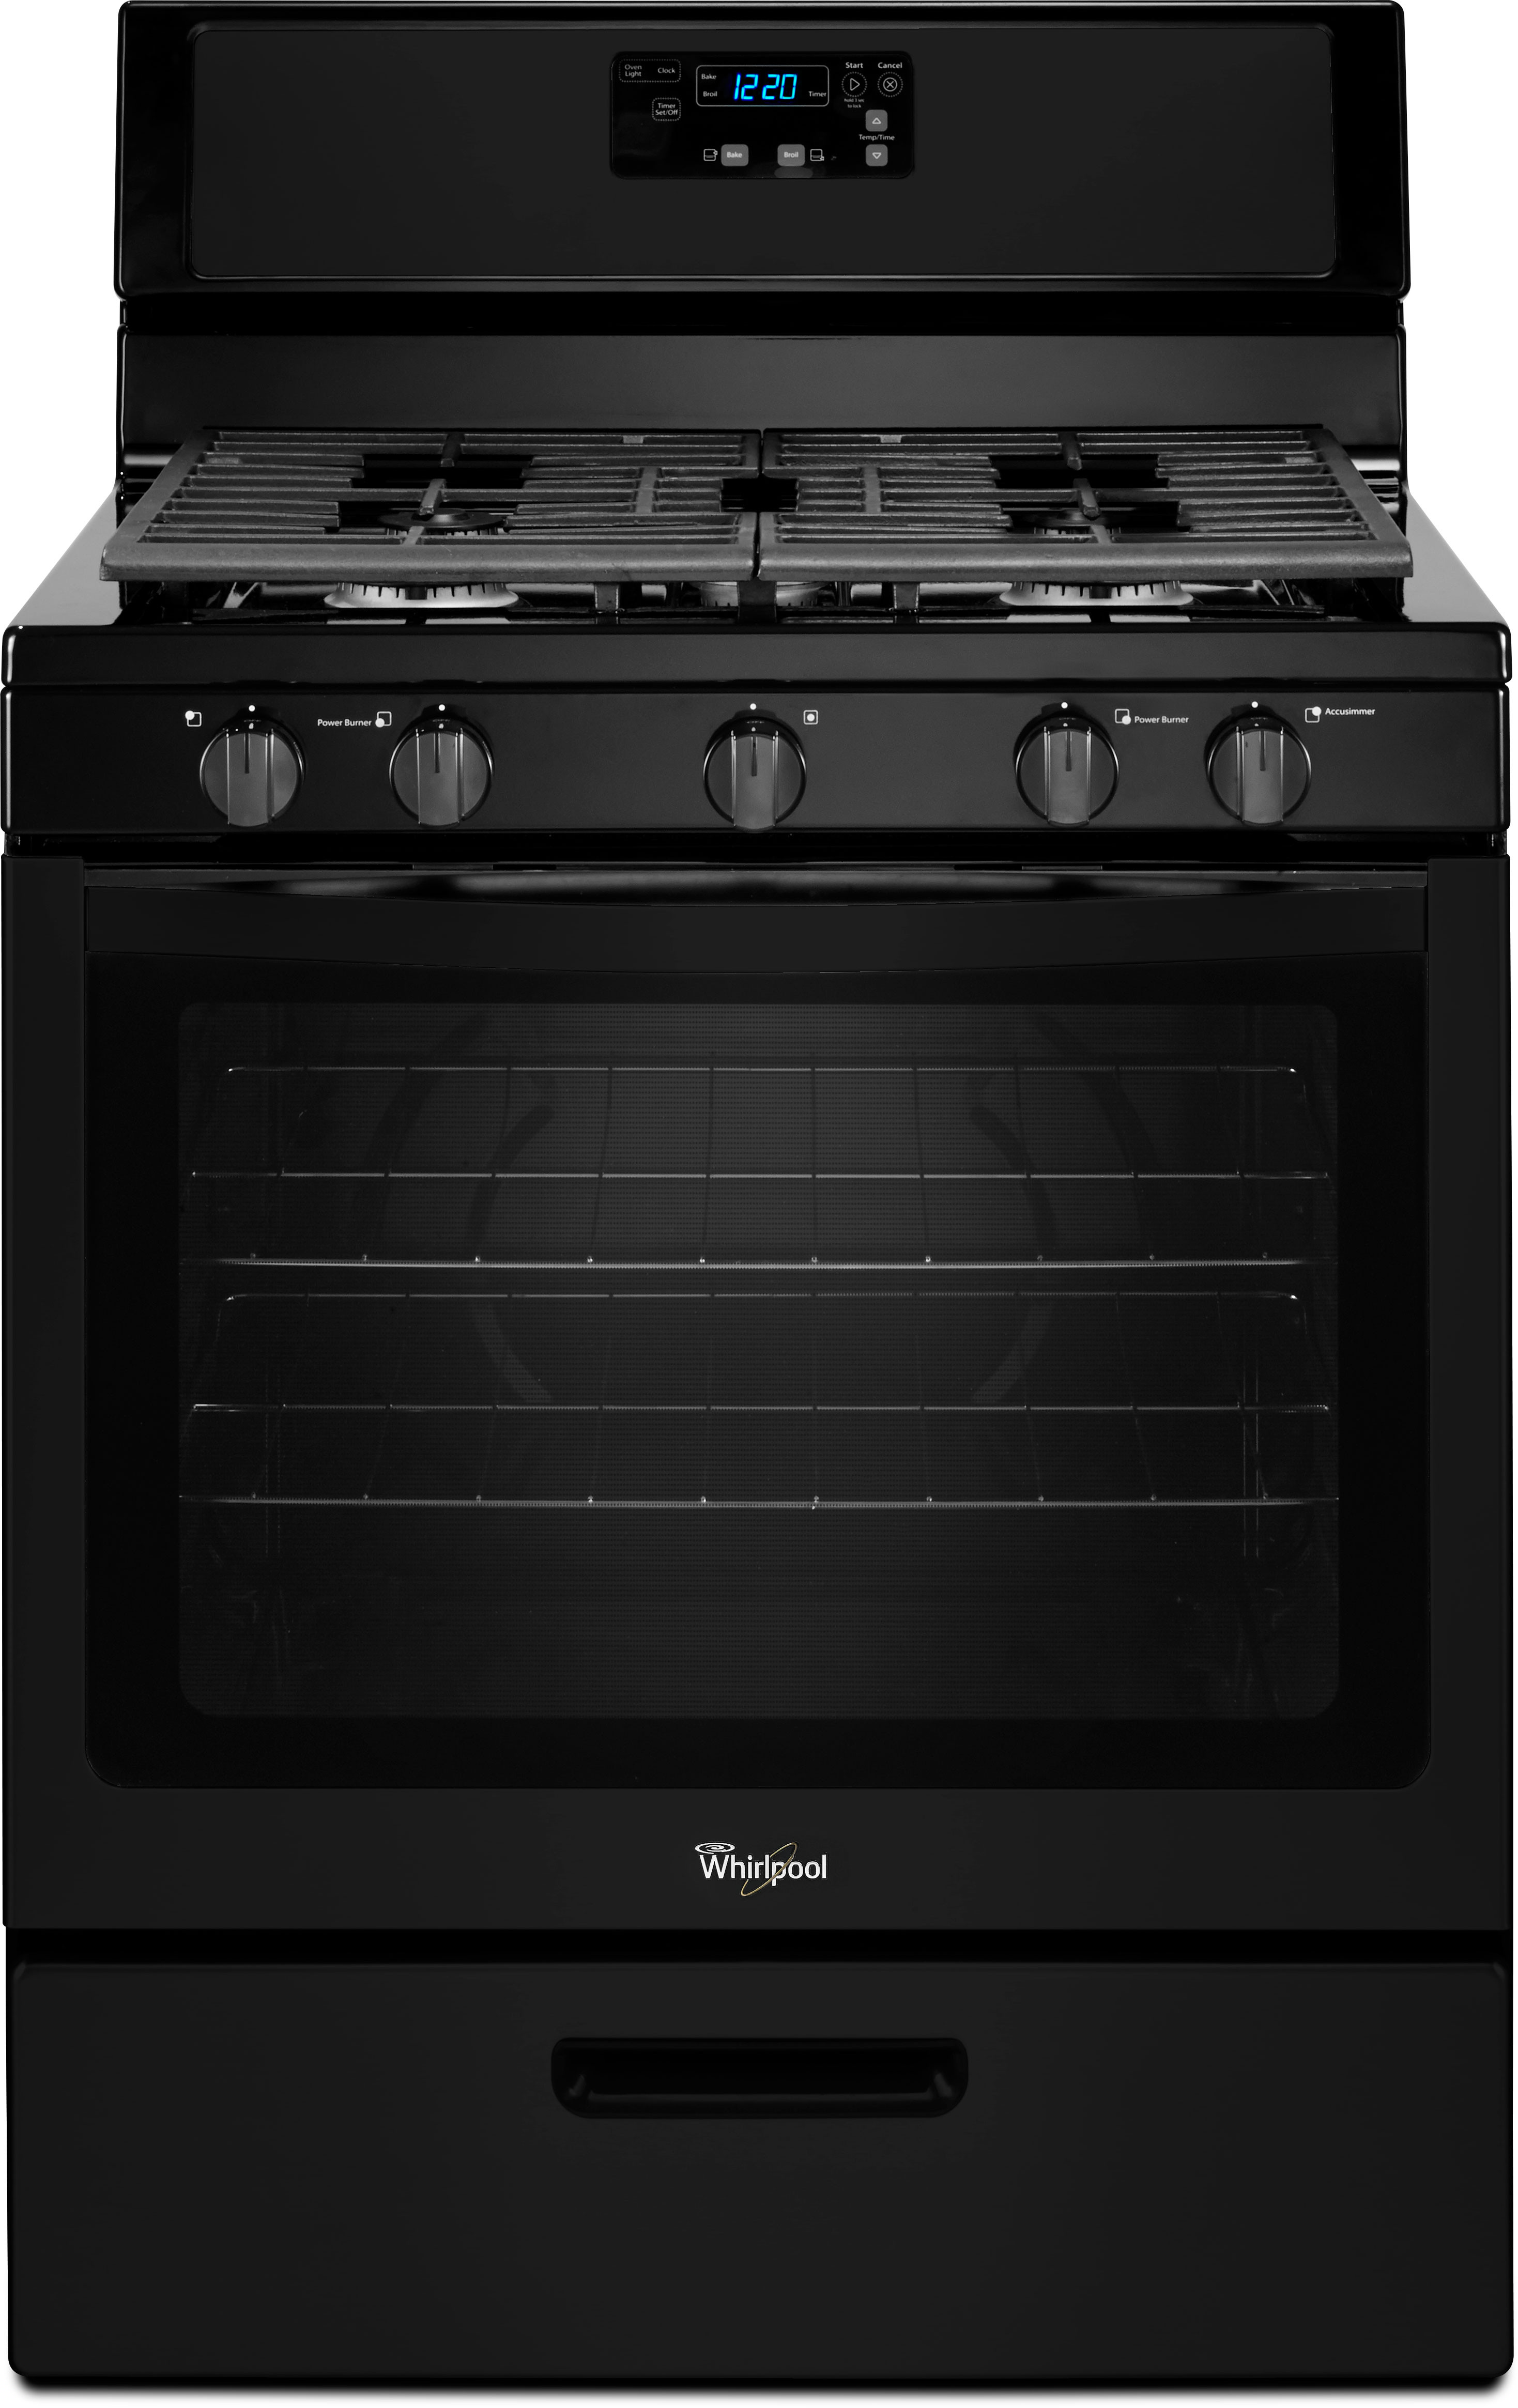 Whirlpool Wfg505m0bb 30 Inch Freestanding Gas Range With 5